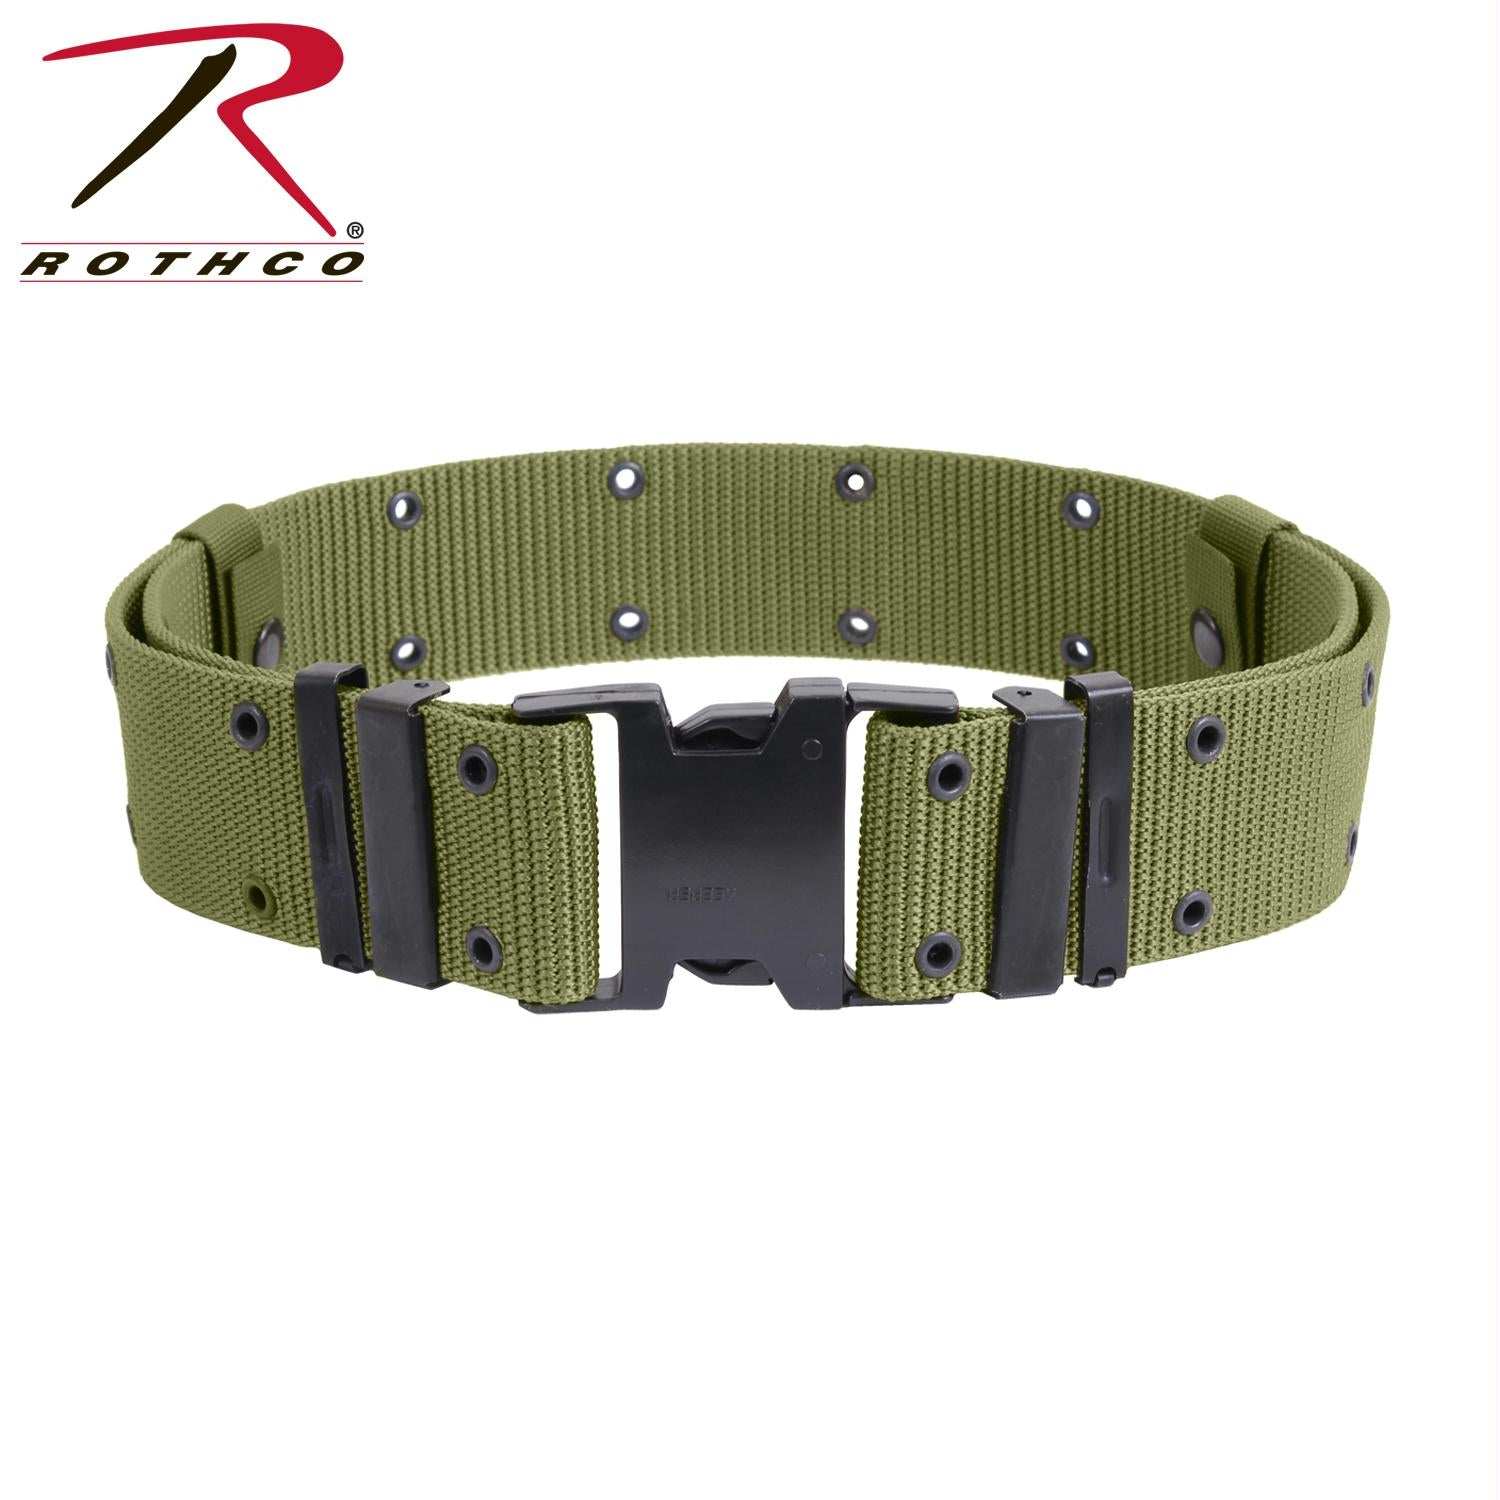 Rothco New Issue Marine Corps Style Quick Release Pistol Belts - Olive Drab / XL